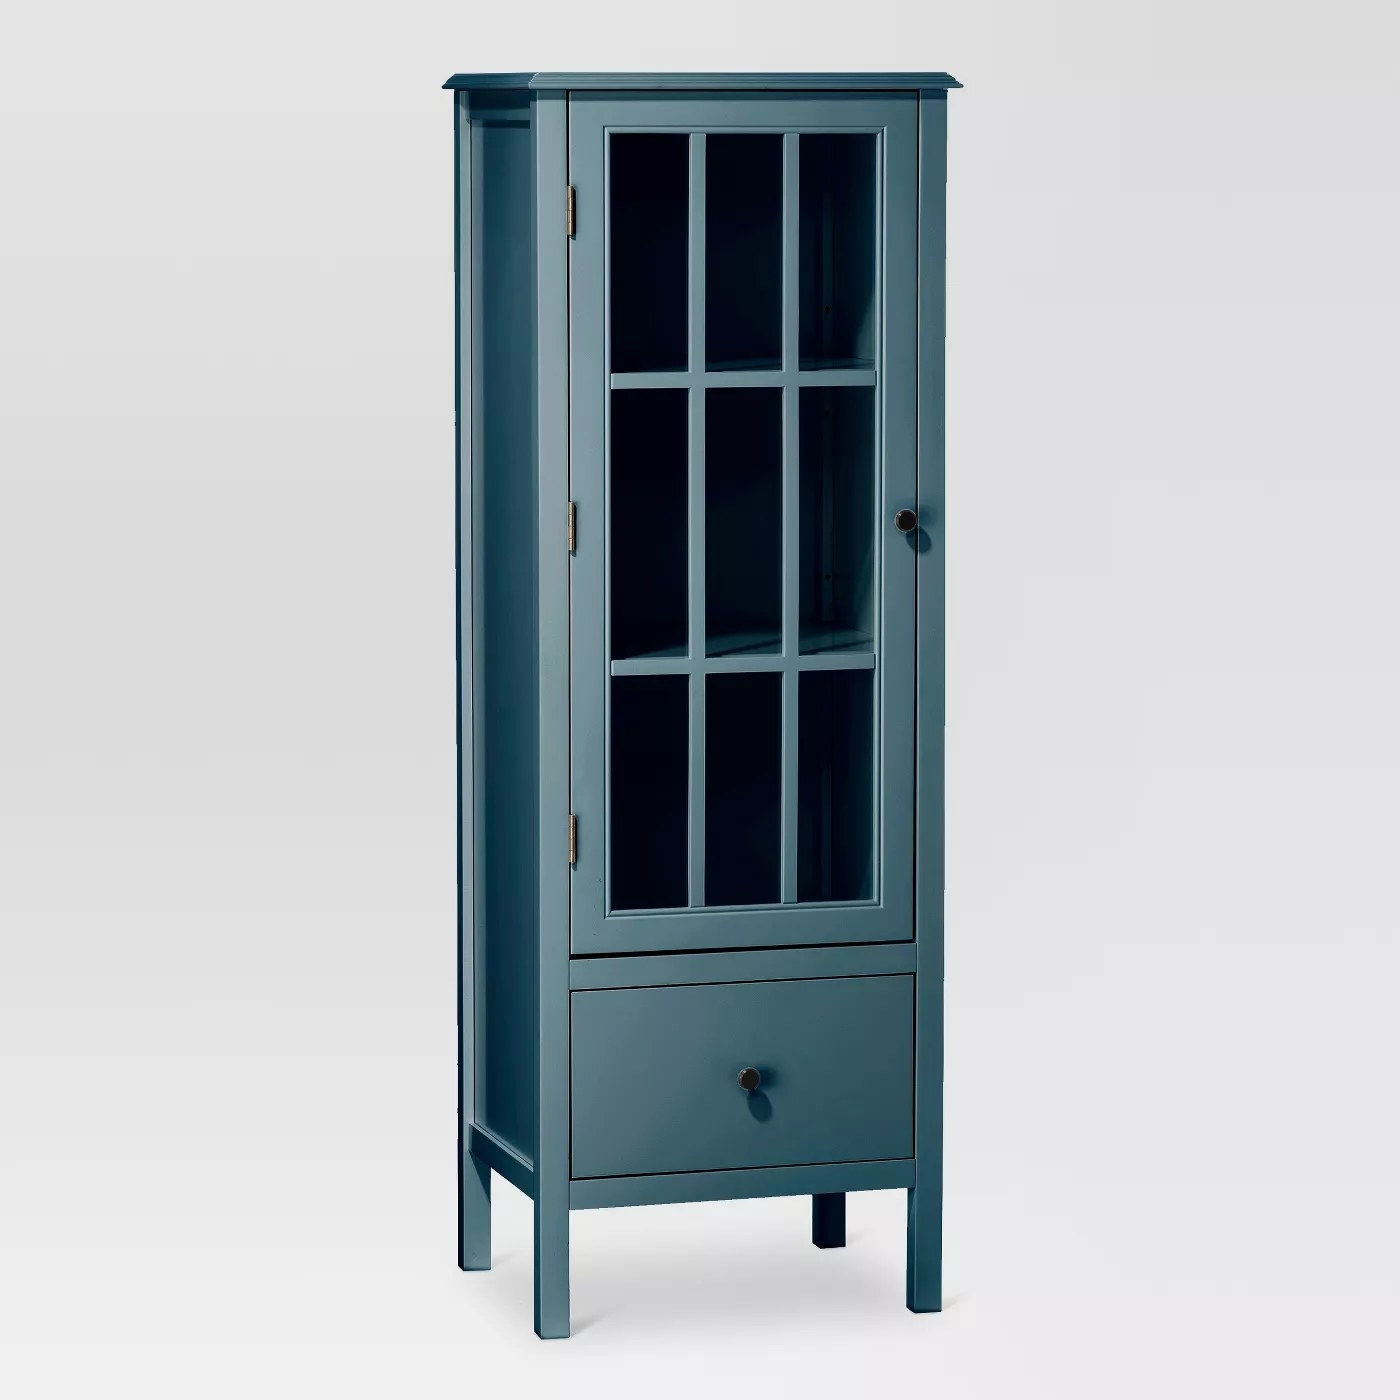 The blue cabinet with window